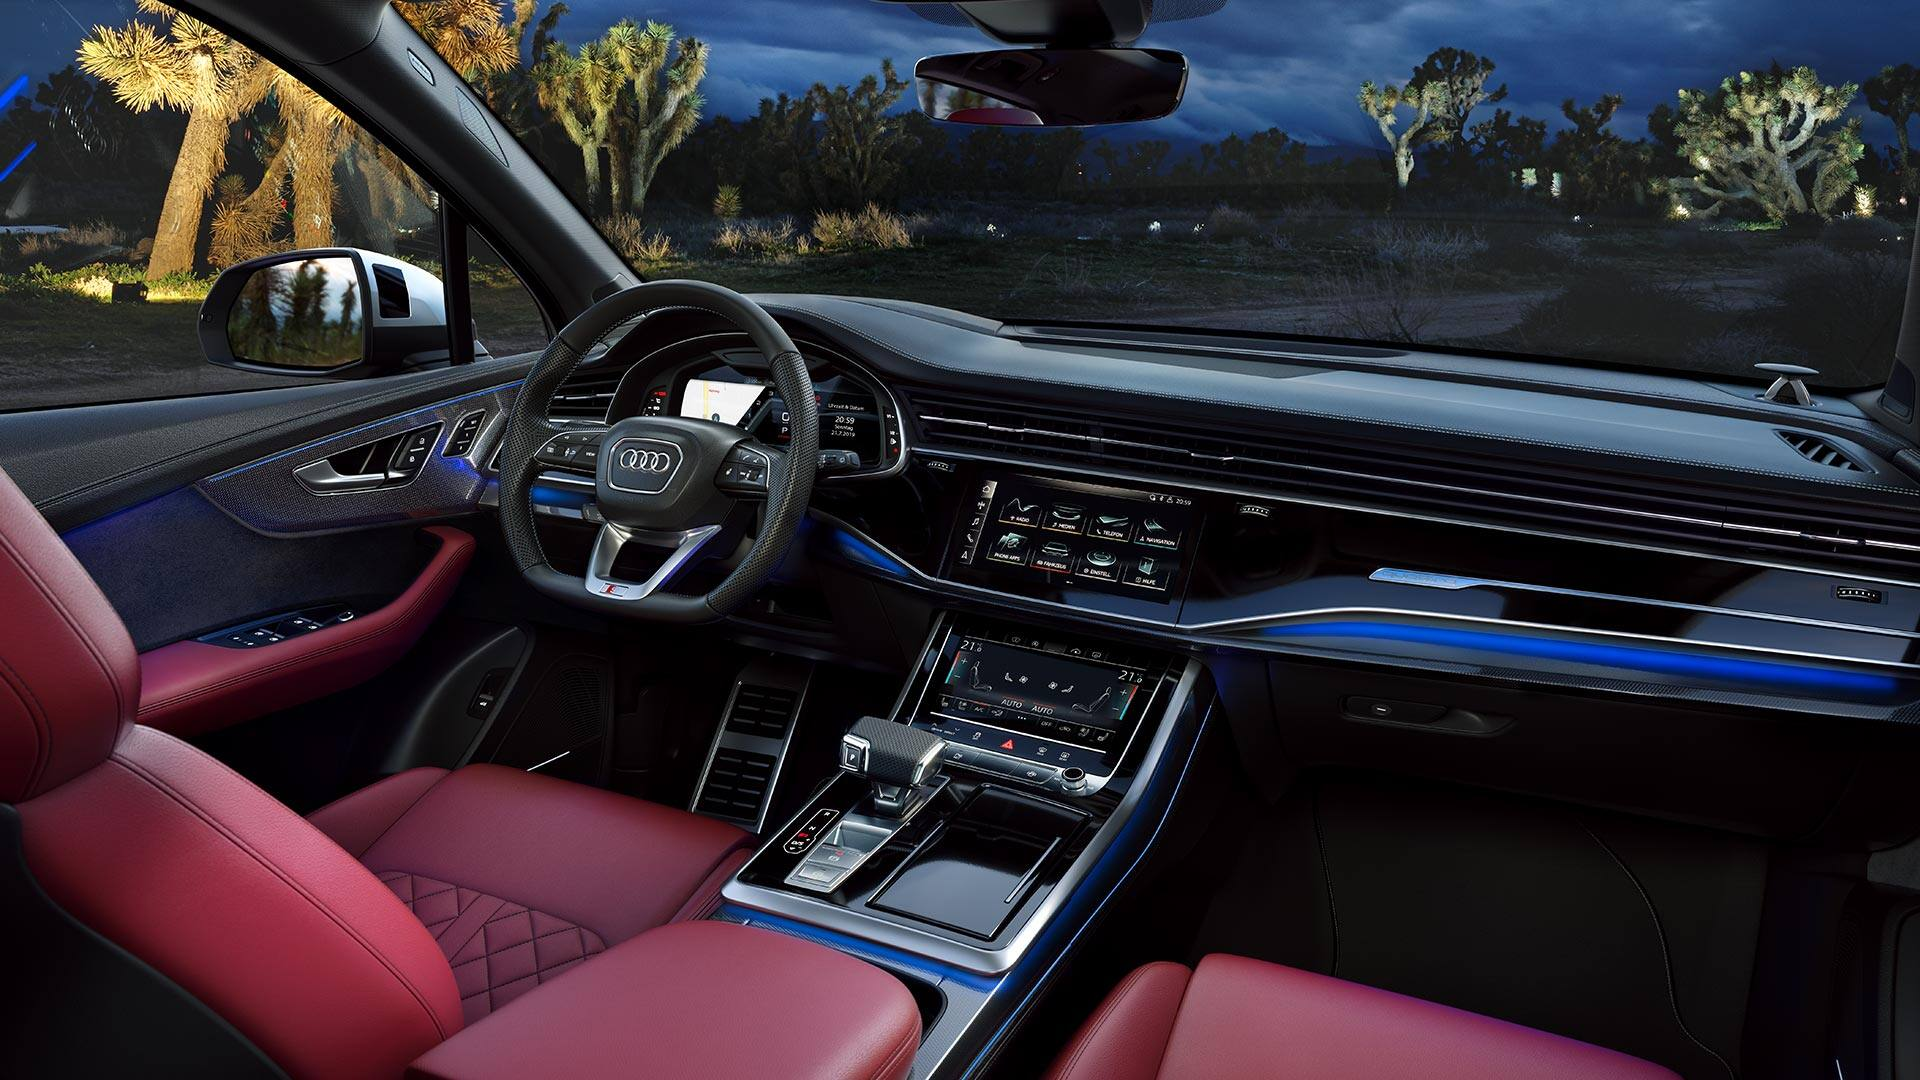 Interior of the Audi SQ7 TDI